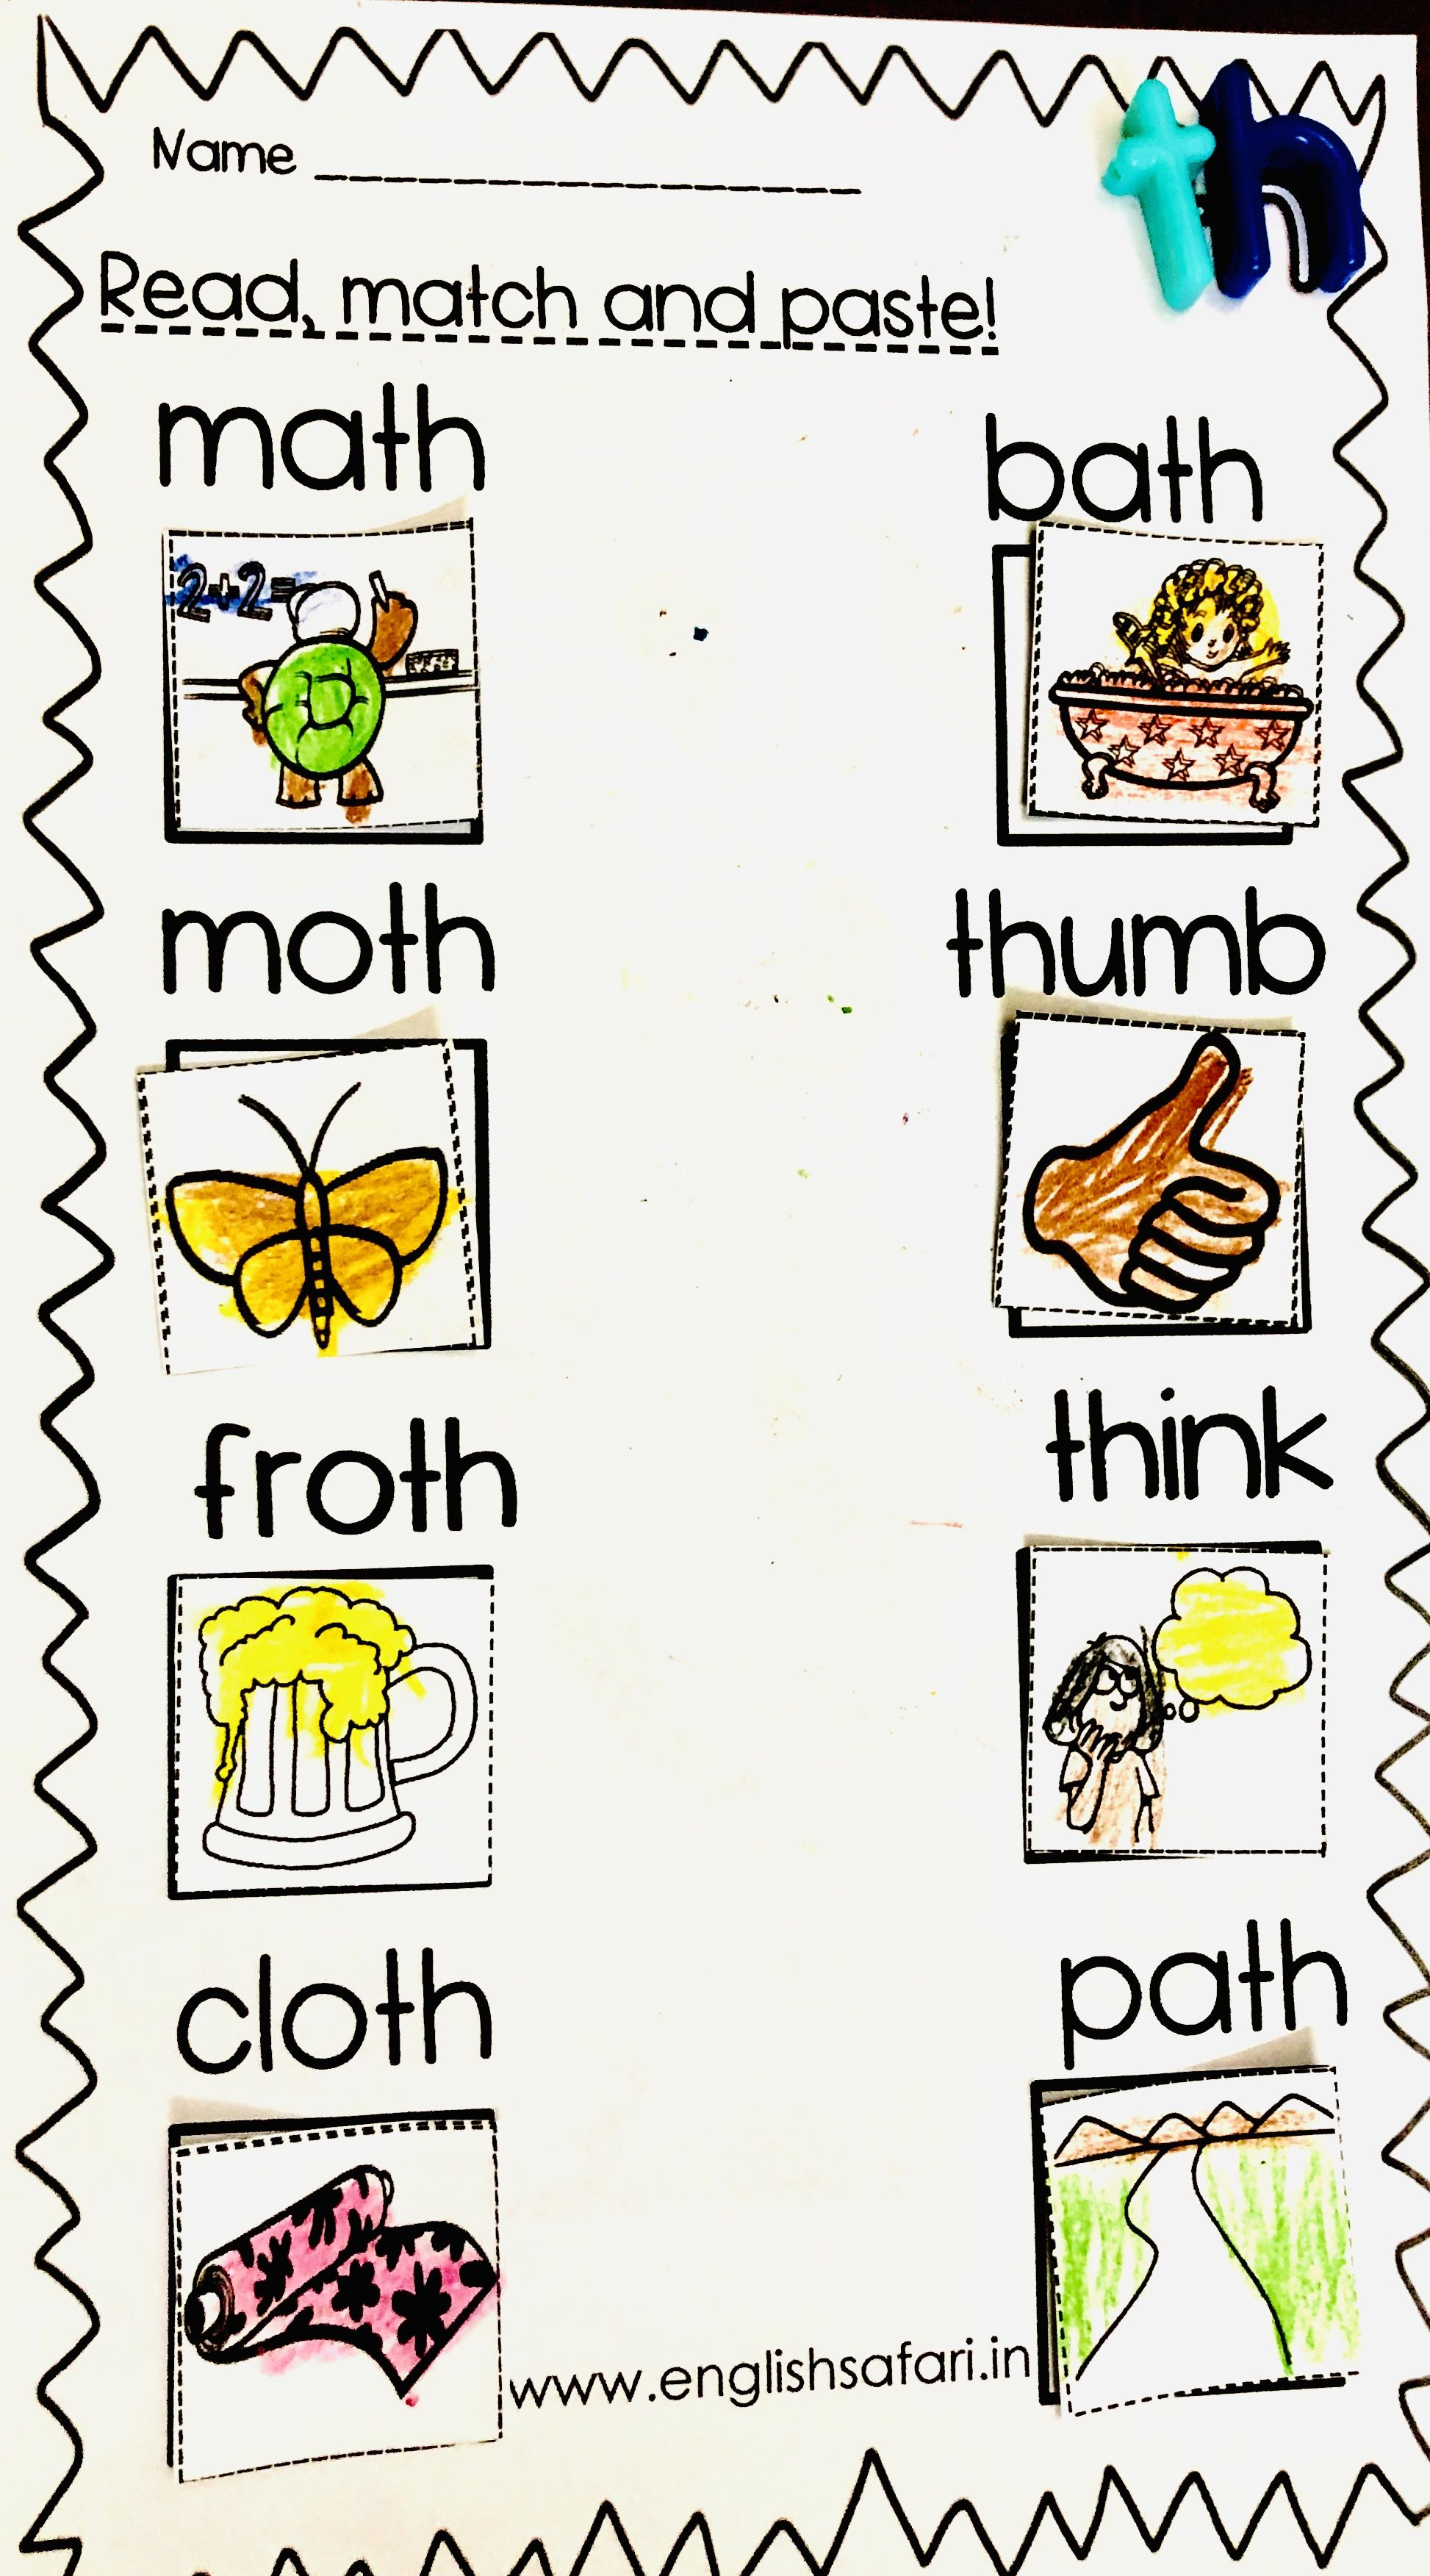 Th Sound Words Worksheets Free Englishsafari